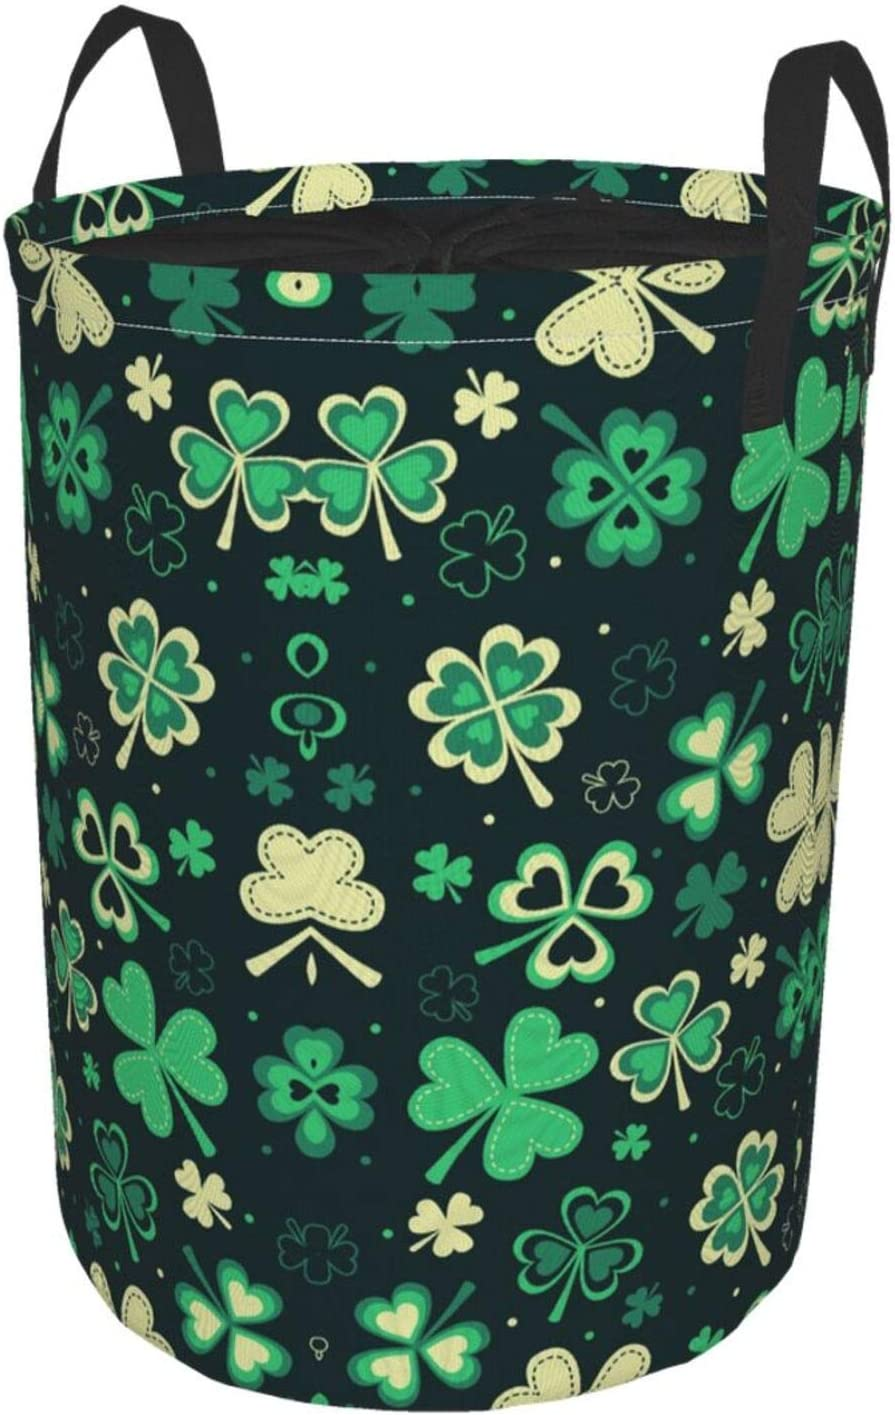 Max 85% OFF HTRHA Four Leaf Clover Circular Waterproof Hamper Home Laundry Ranking TOP14